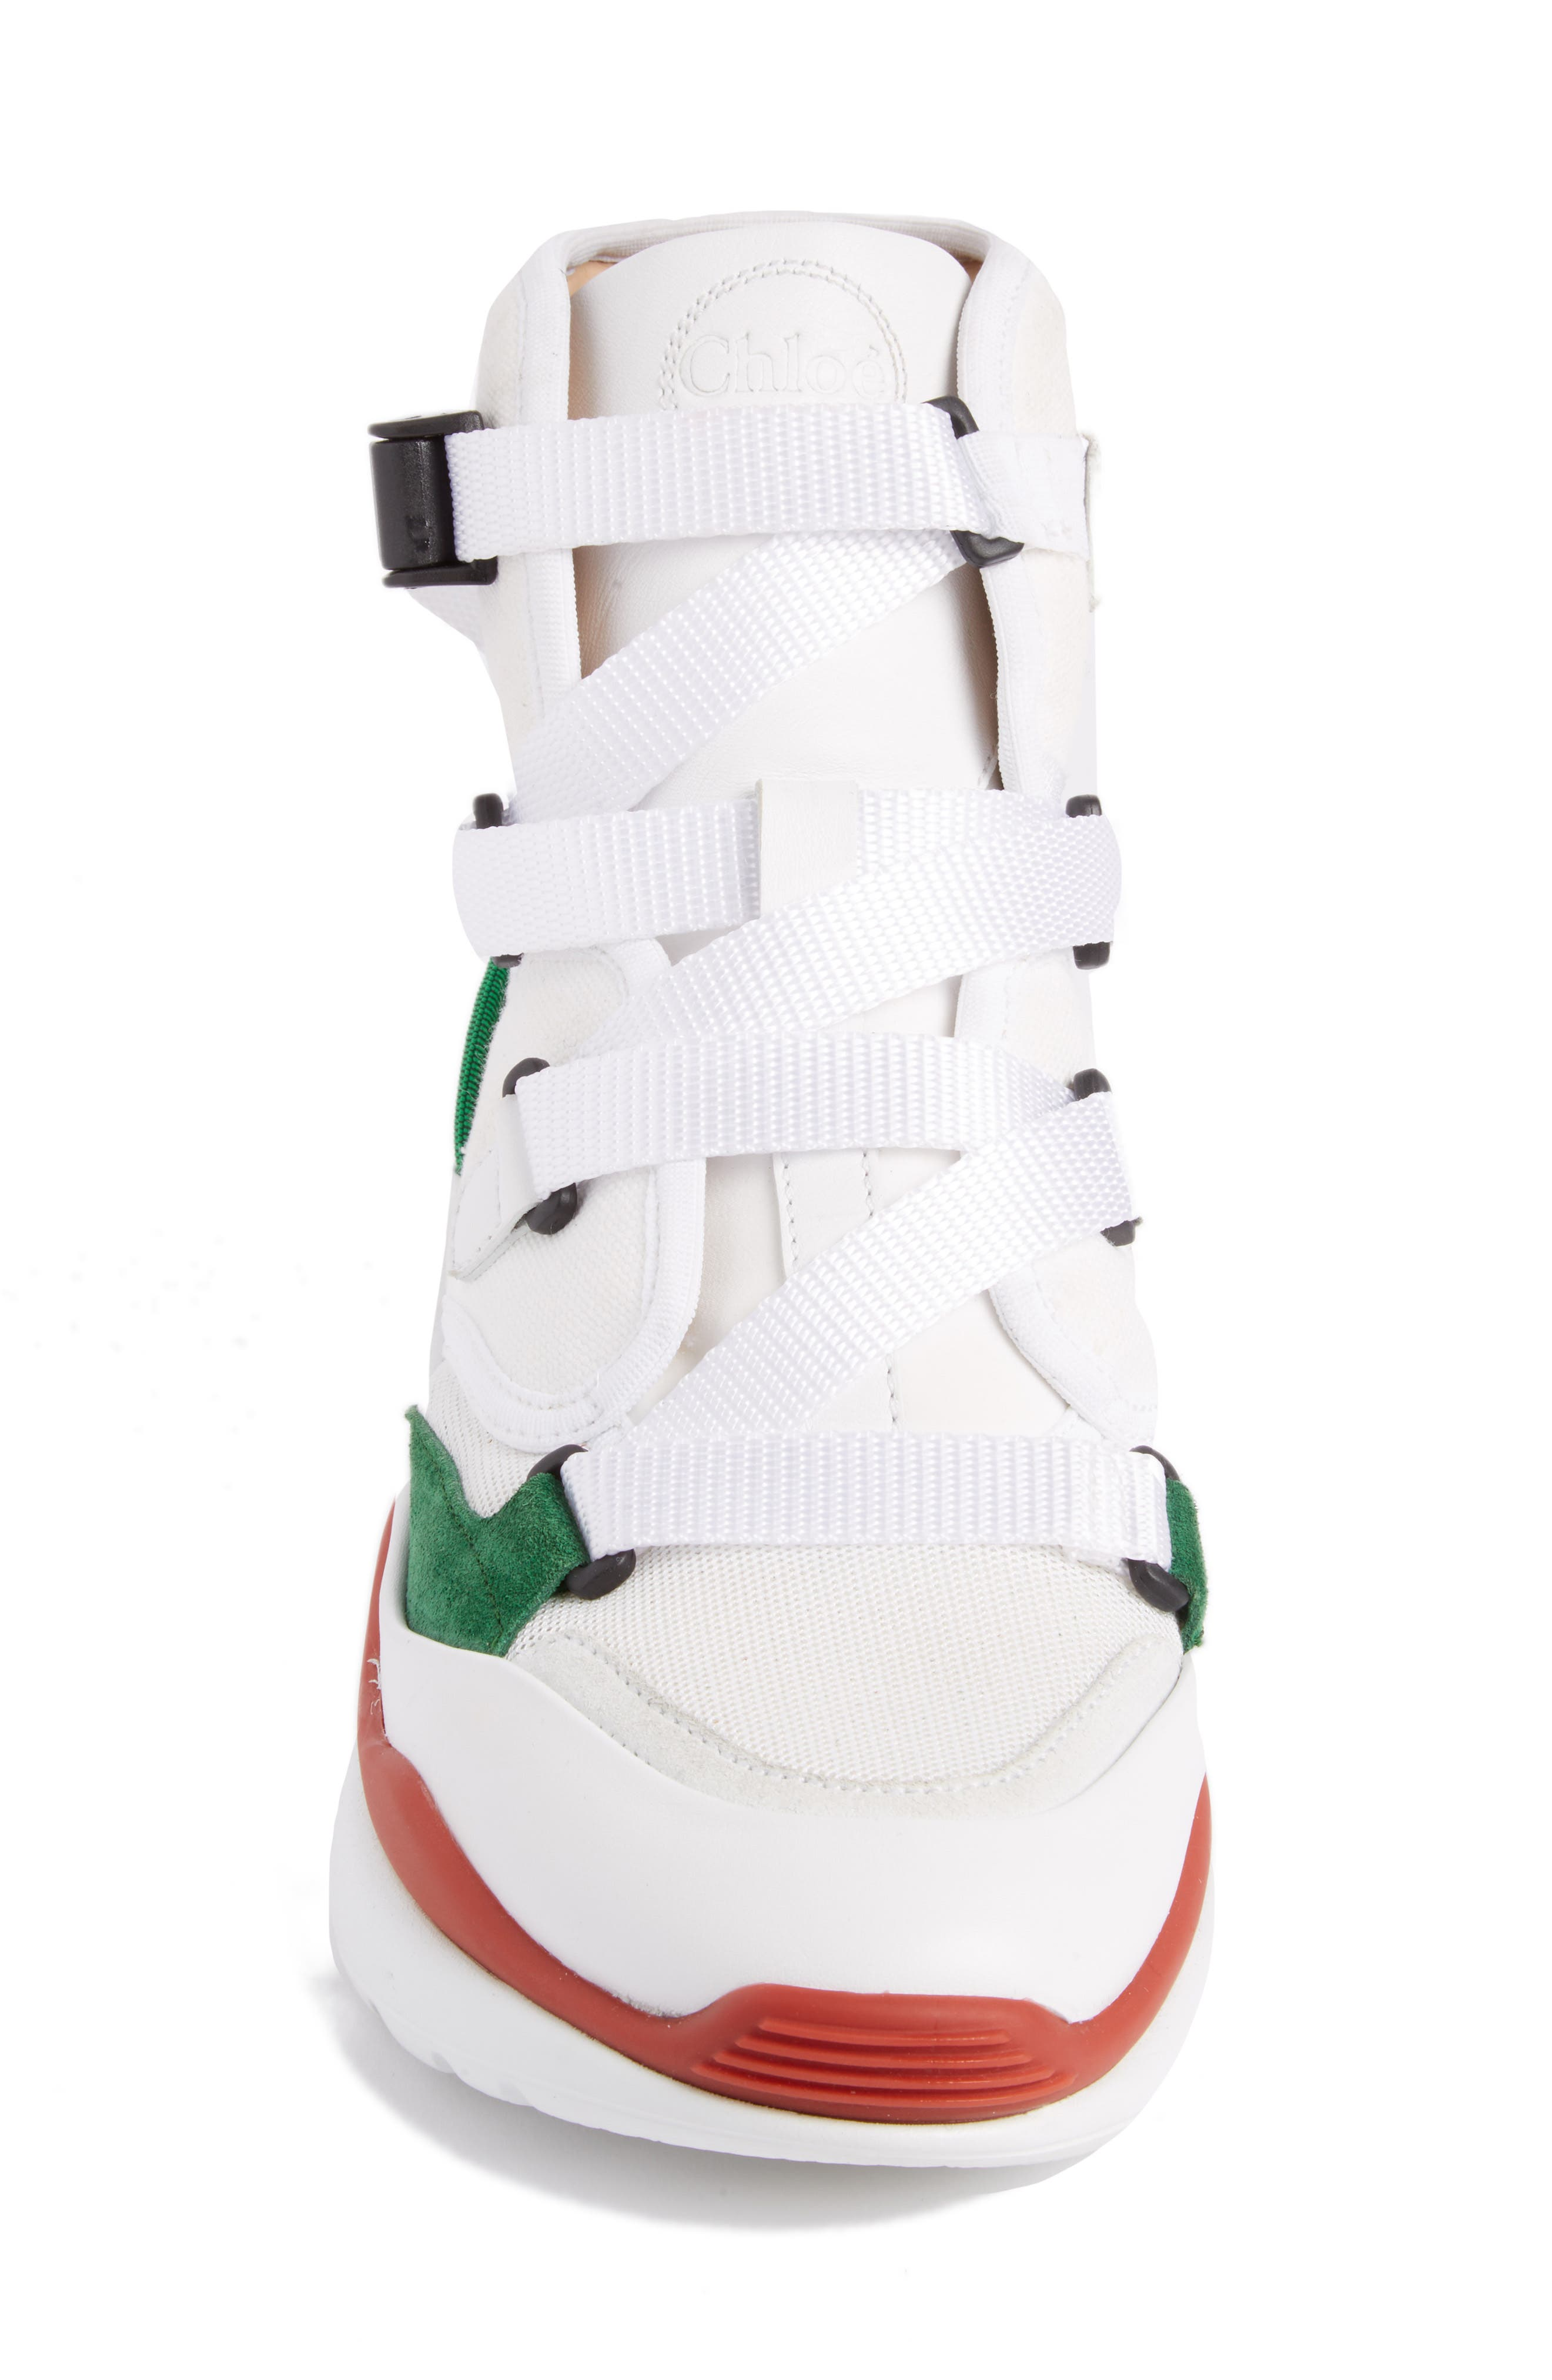 Sonnie High Top Sneaker,                             Alternate thumbnail 3, color,                             White/ Green/ Red